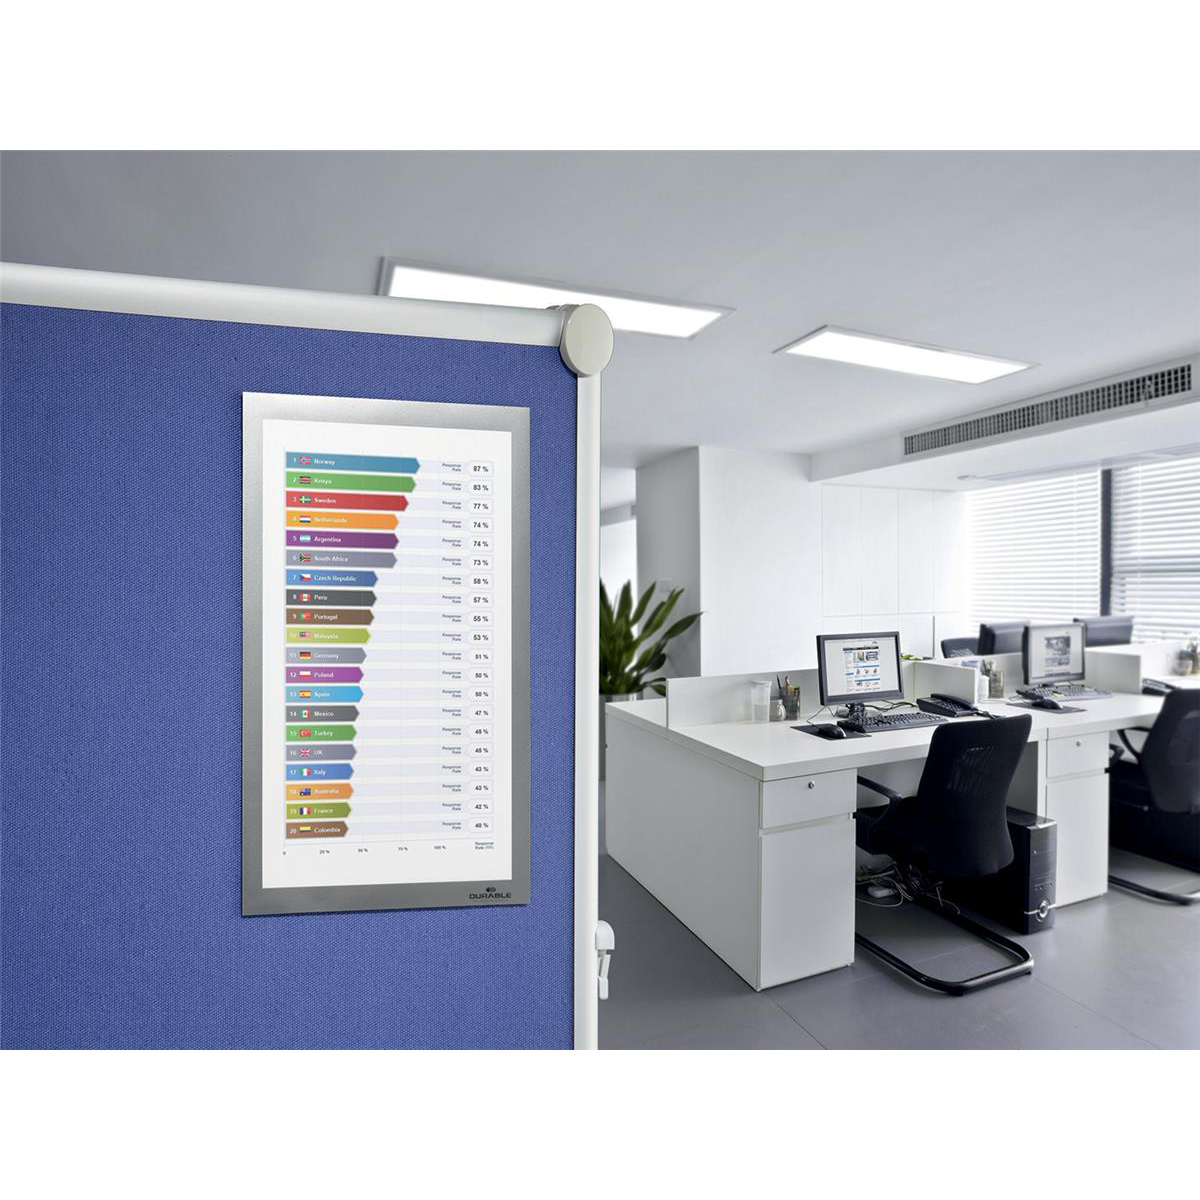 Durable Duraframe Display Frame with Fabric Grip Tape and Magnetic Closure A4 Silver Ref 496823